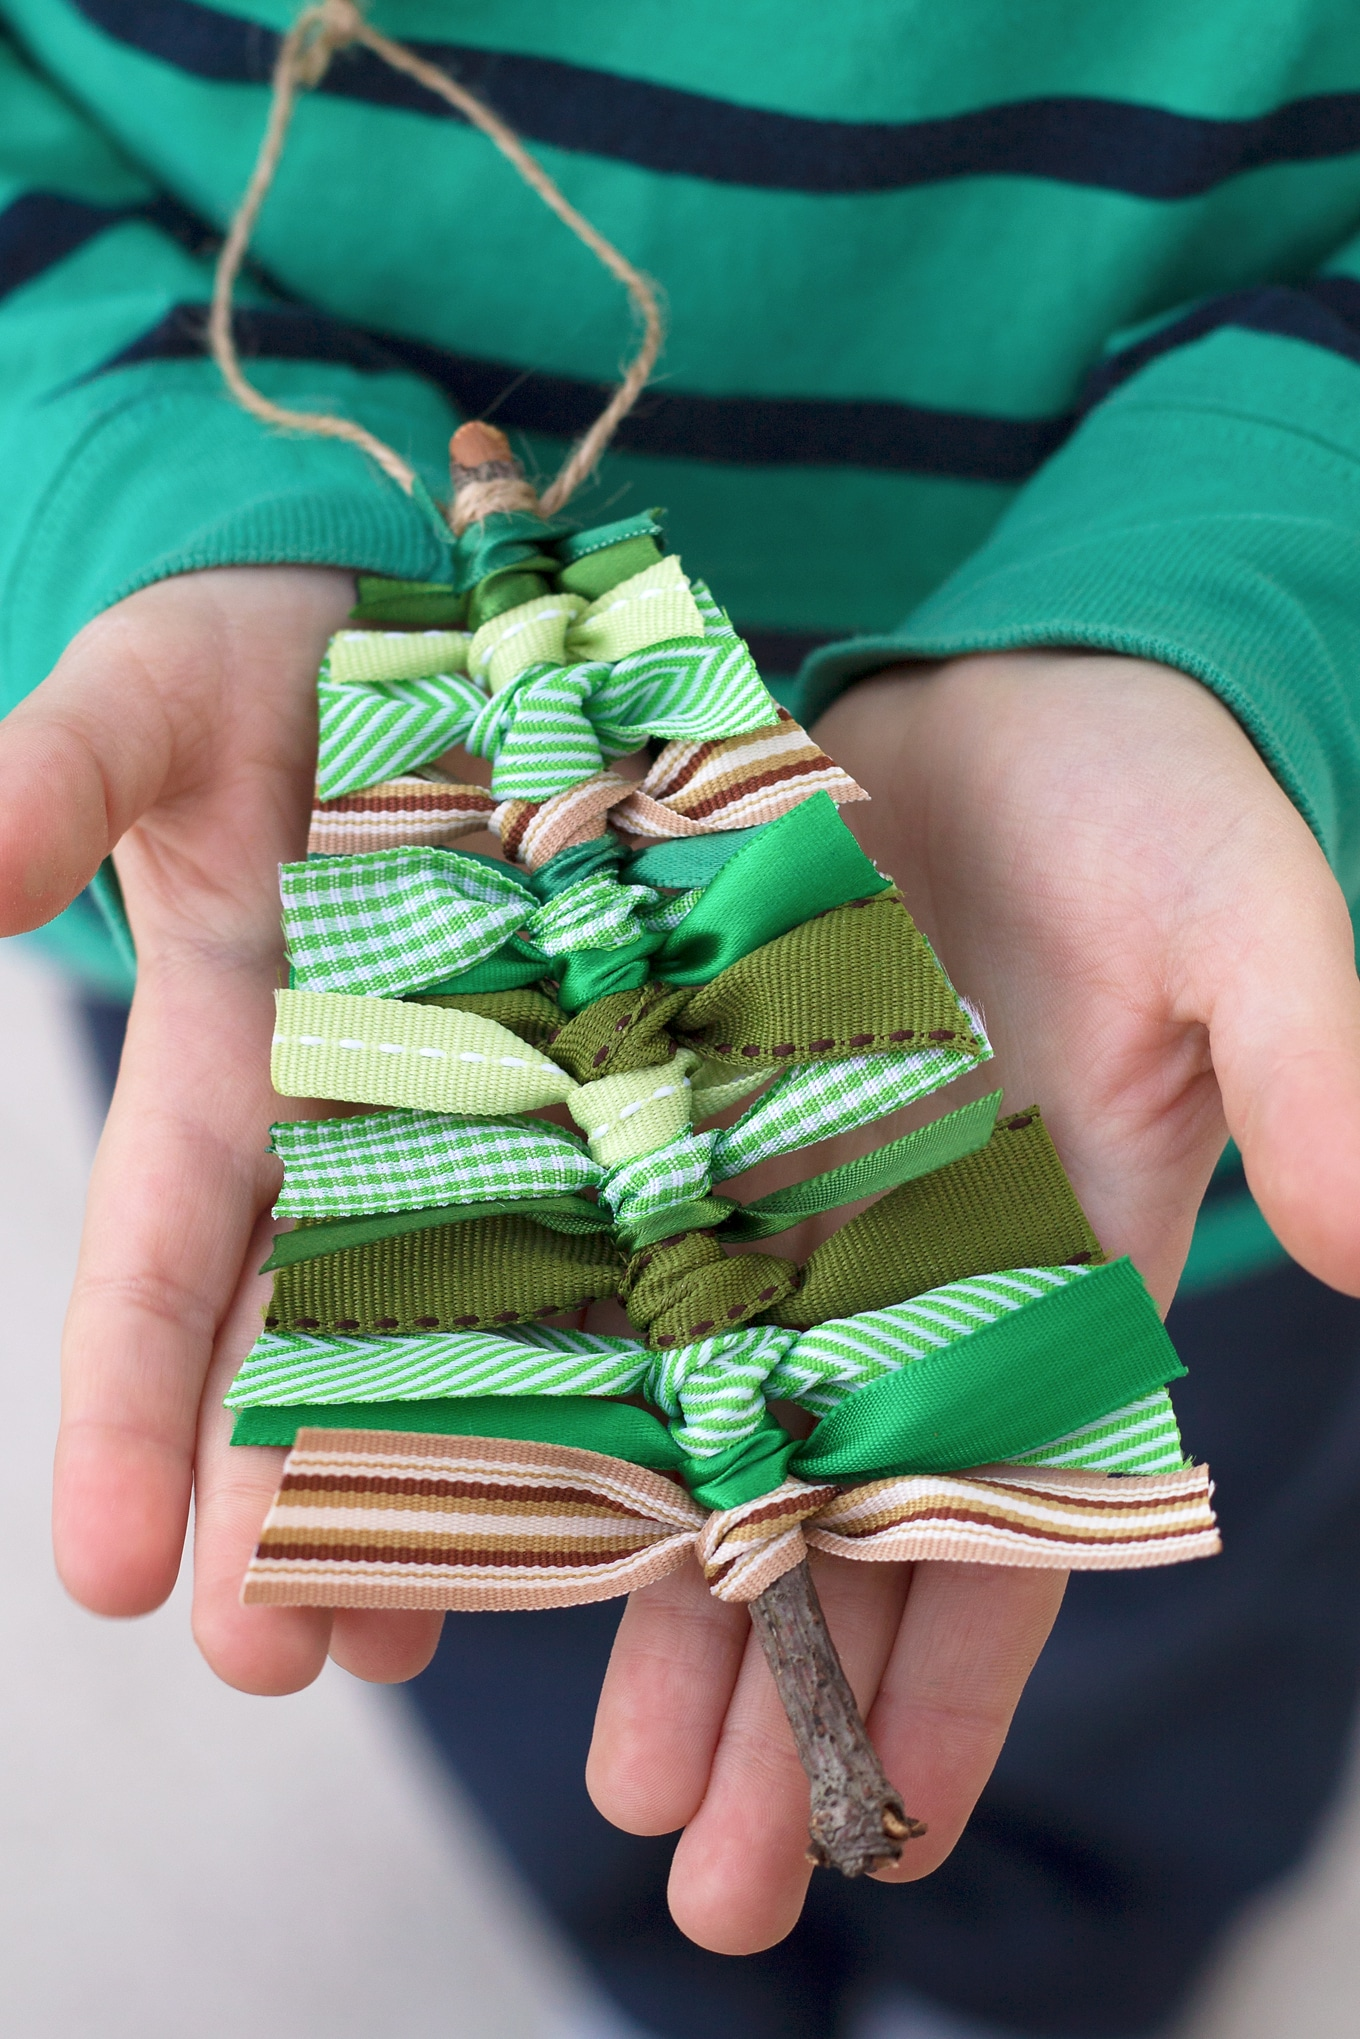 Go out to the park and burn off some energy. While you're there collect some twigs, then tie up some scrap ribbon, to make some cute Christmas tree decorations.